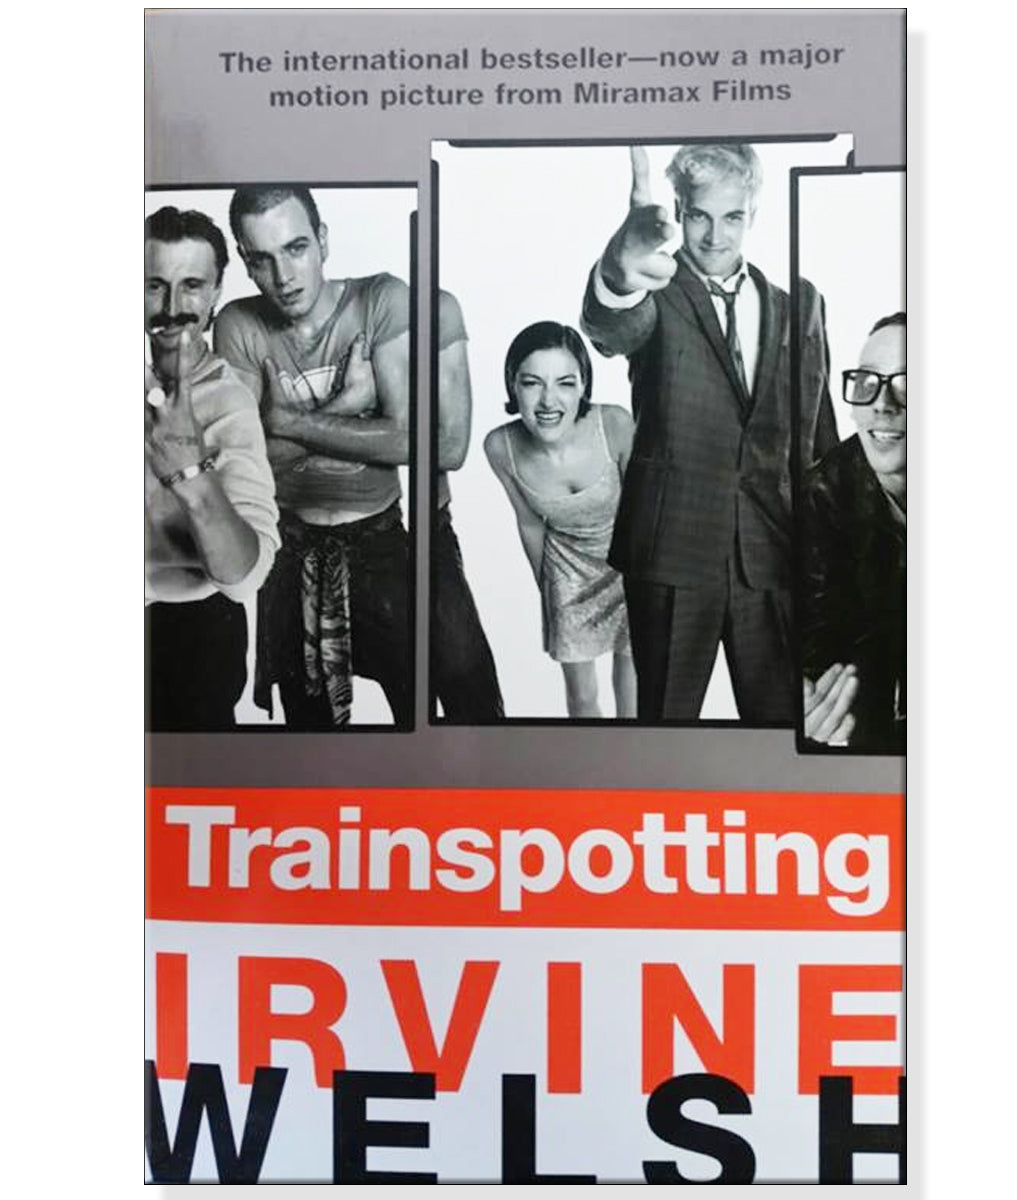 Trainspotting Book by Irvine Welsh